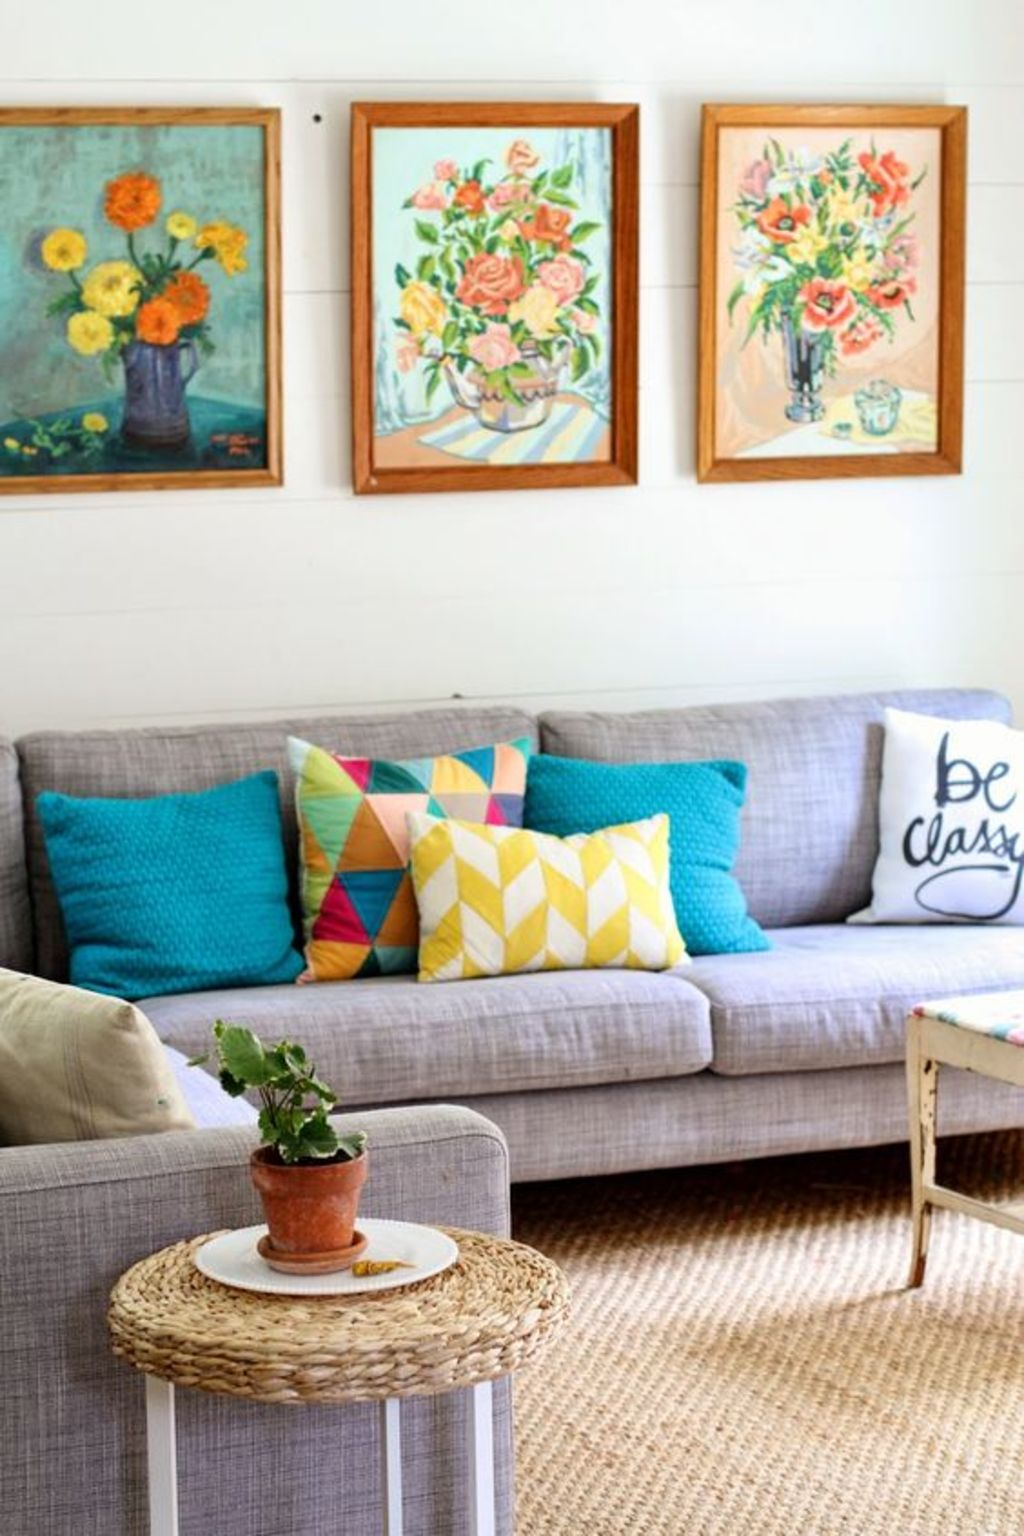 https://elonahome.com/wp-content/uploads/2019/01/Amazing-ideas-of-cushions-as-beautiful-decoration-to-enhance-living-room-refreshing-atmosphere-Part-3.jpg